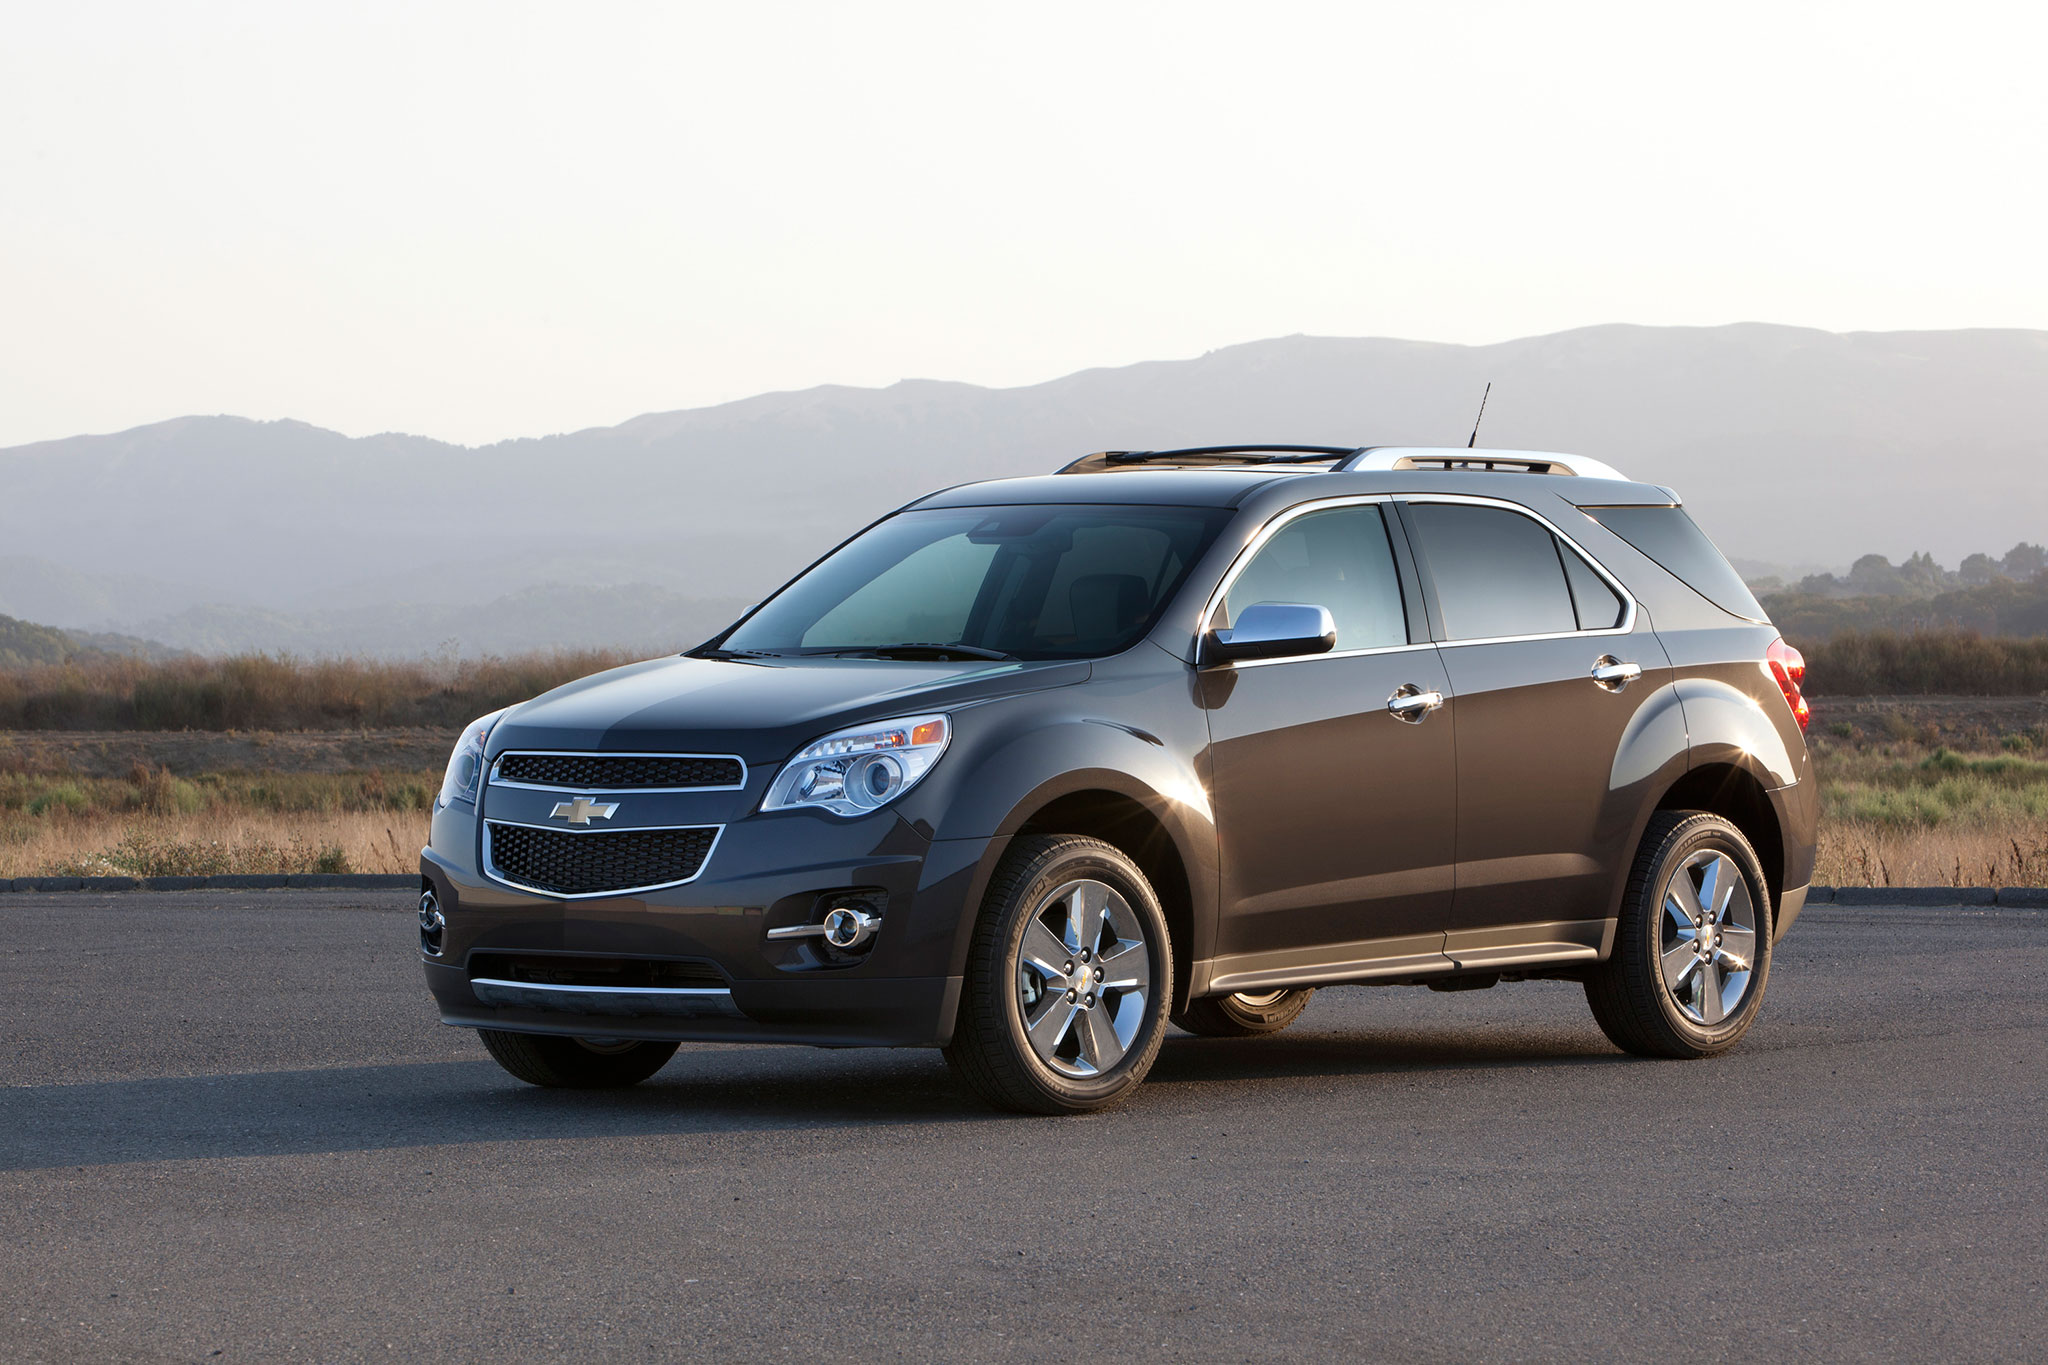 Chevrolet equinox 2014 photo - 4